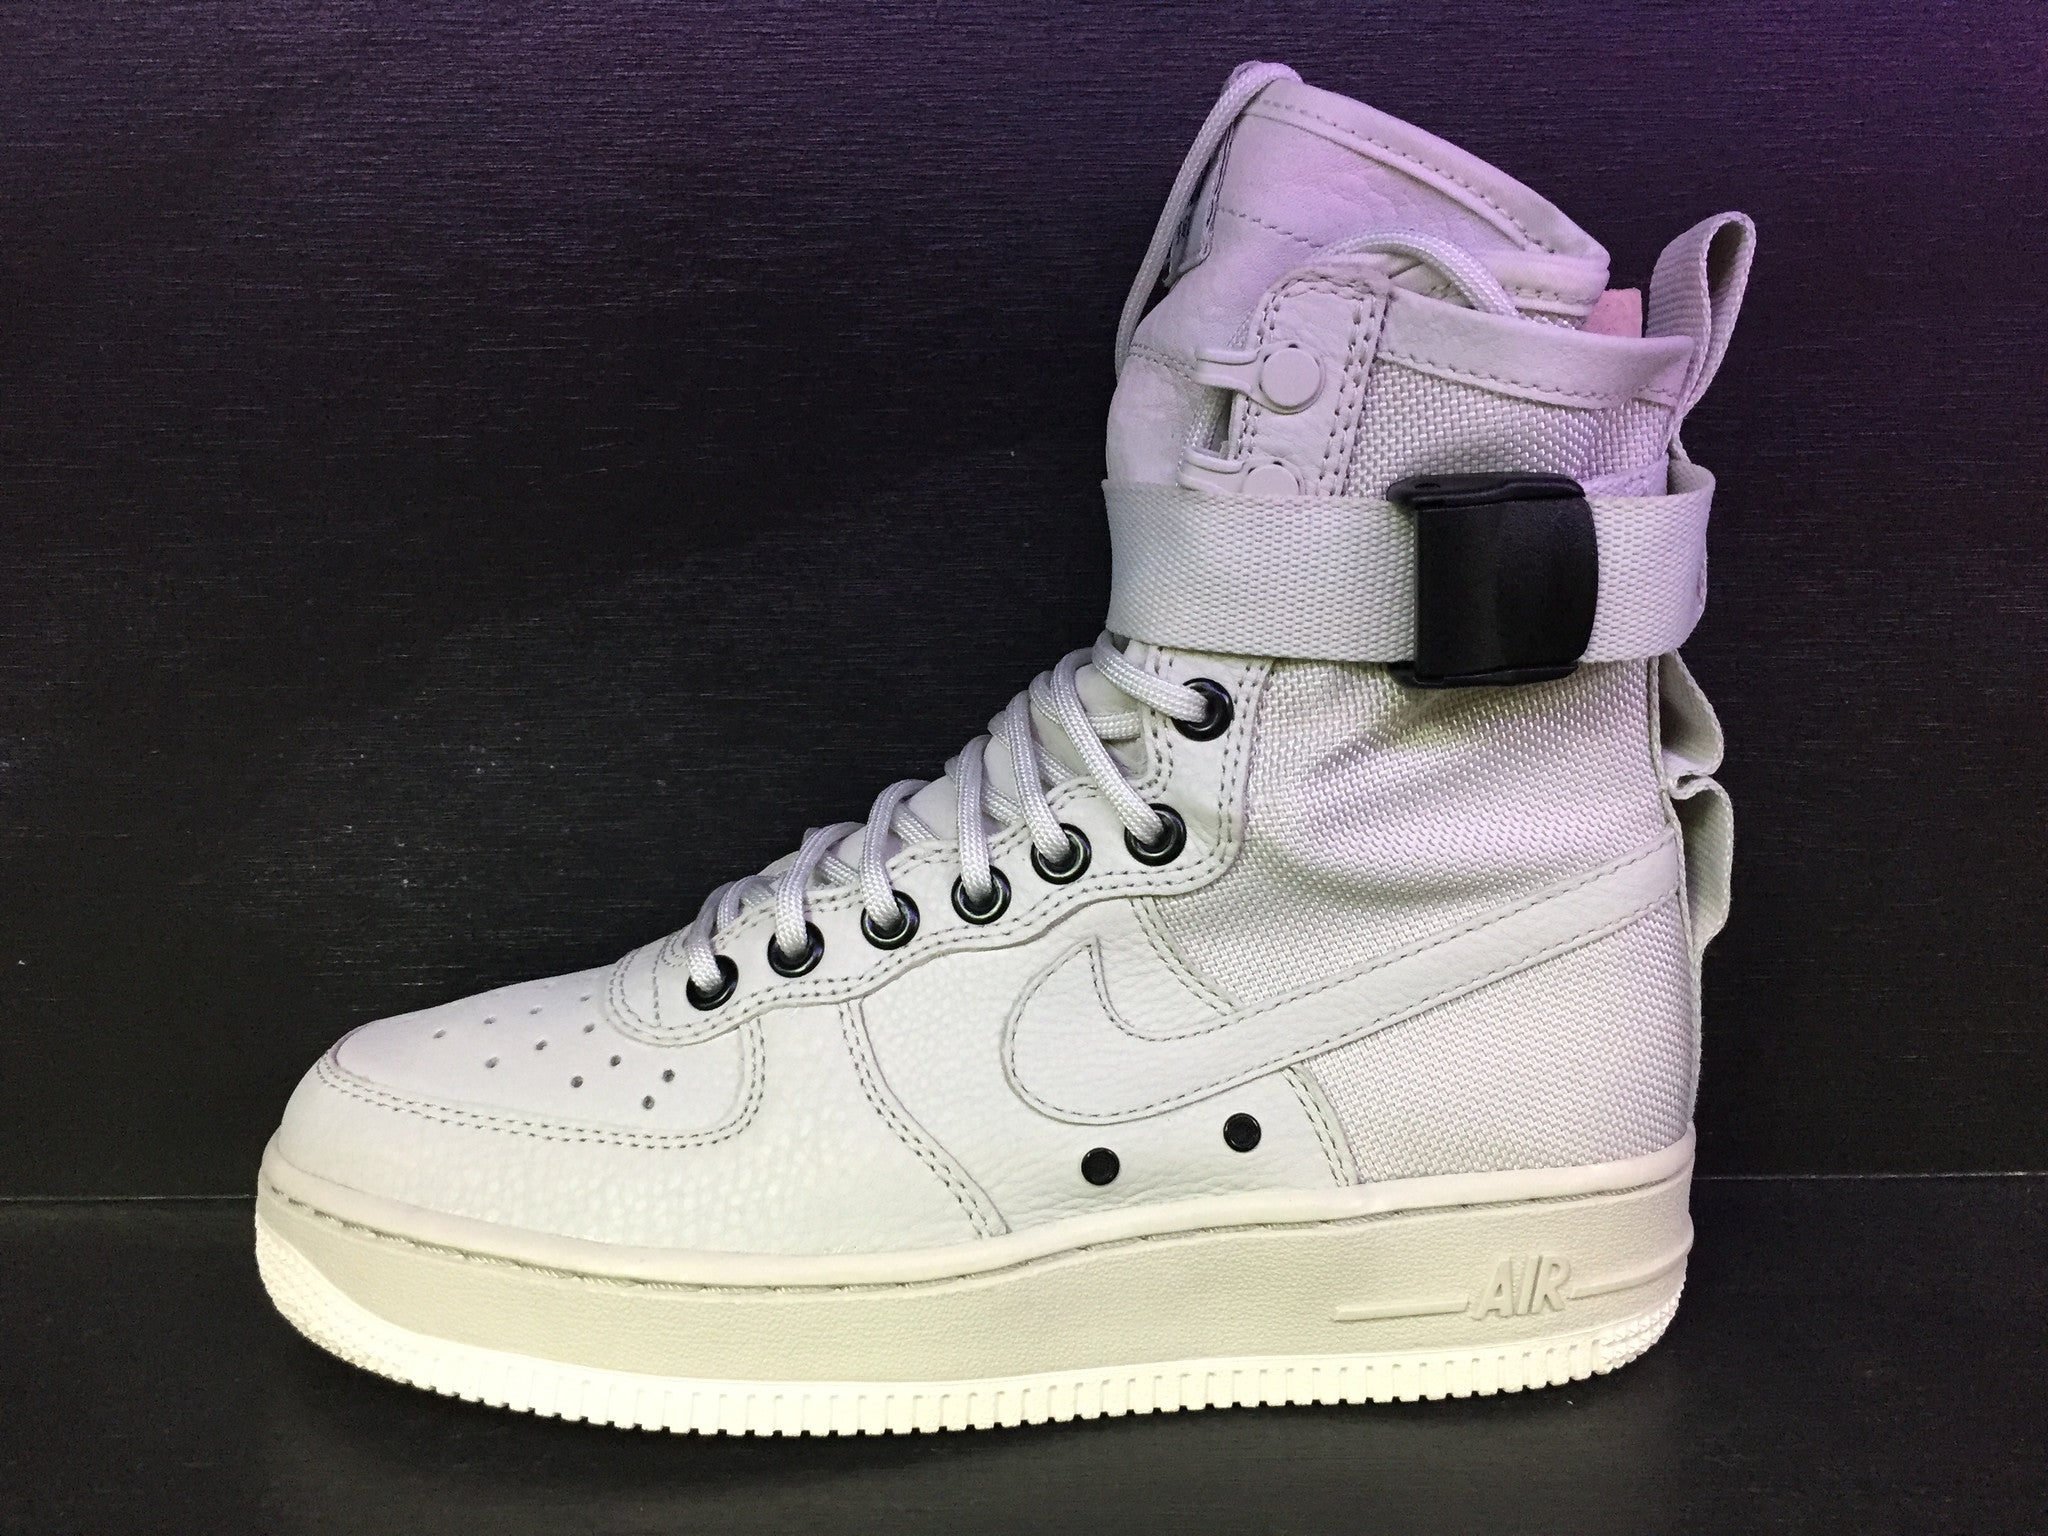 Special Field Air Force 1 'Light Bone' Woman's